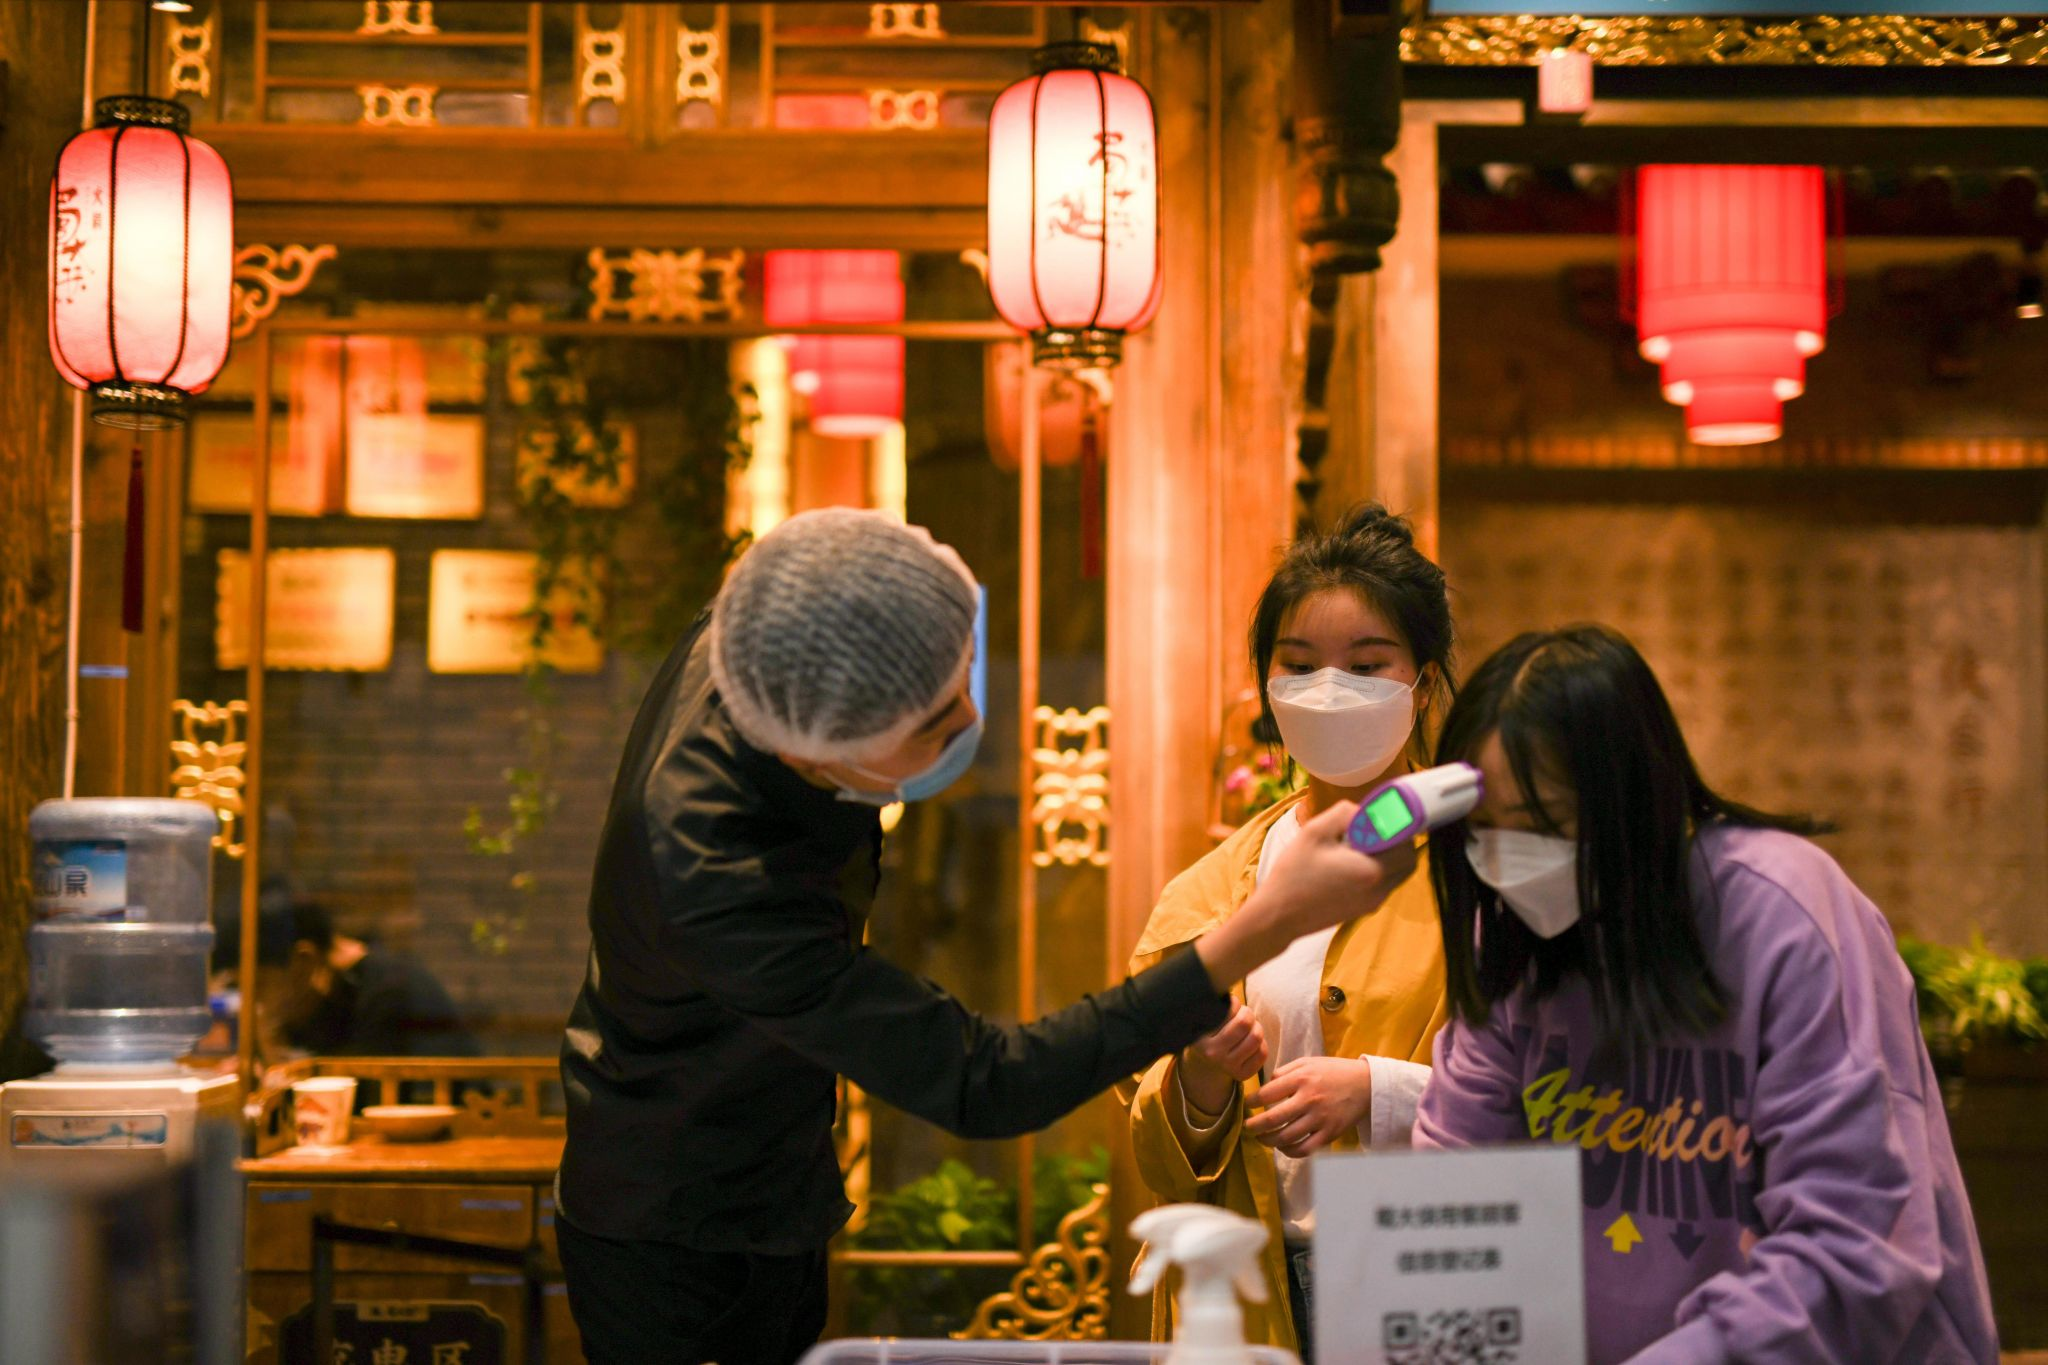 United States Restaurants Will Reopen With A Different Look. China Gives Clues As To How. photo